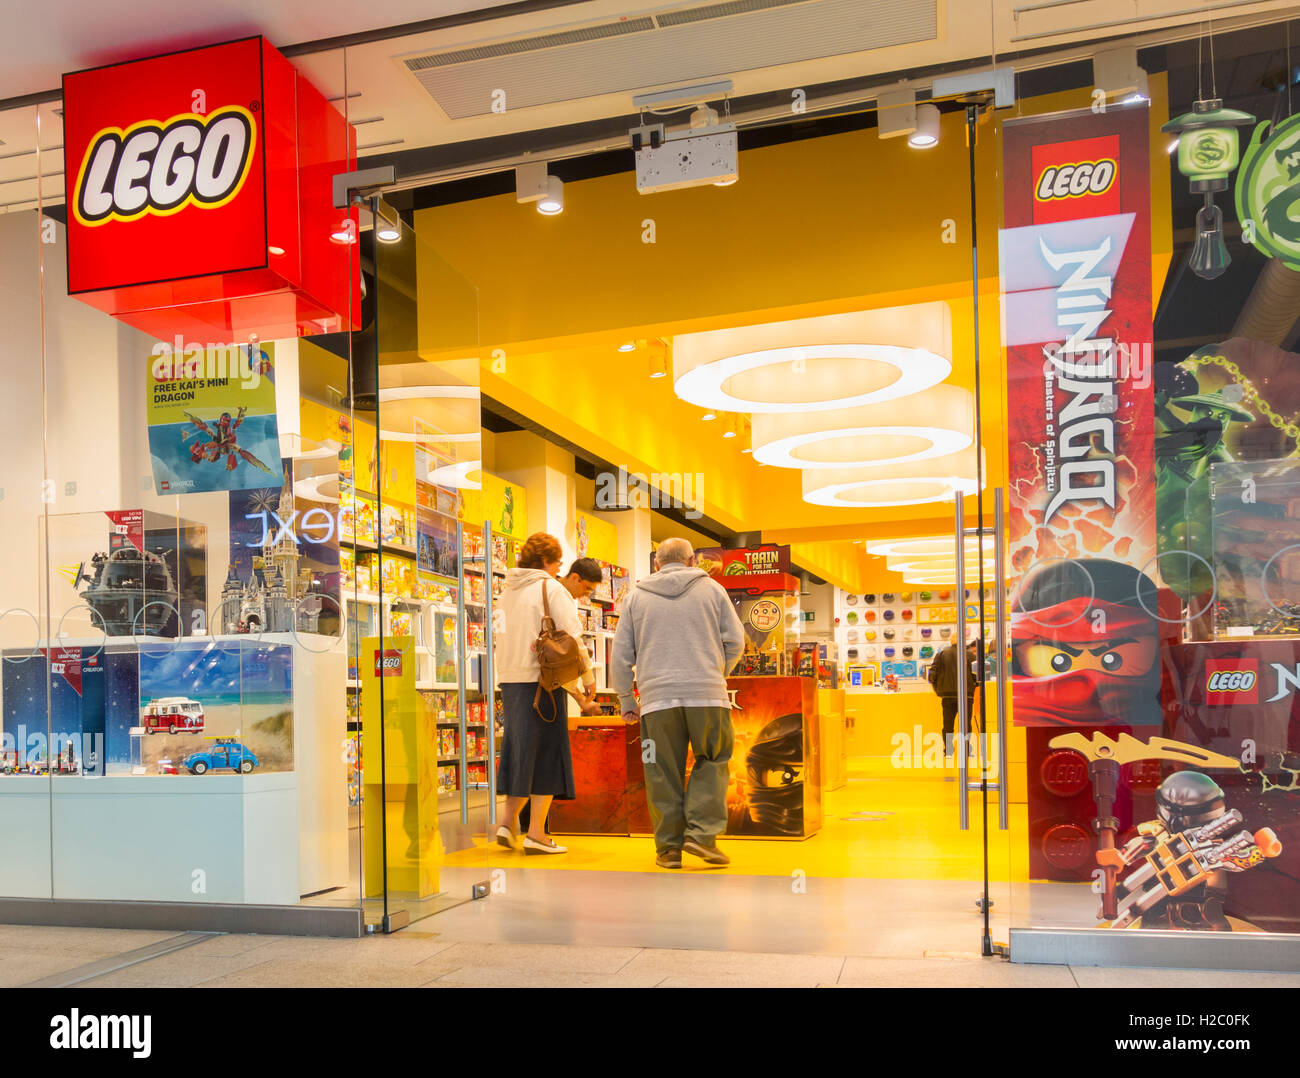 Lego store window in Trinity Leeds shopping centre. Leeds, England. UK - Stock Image